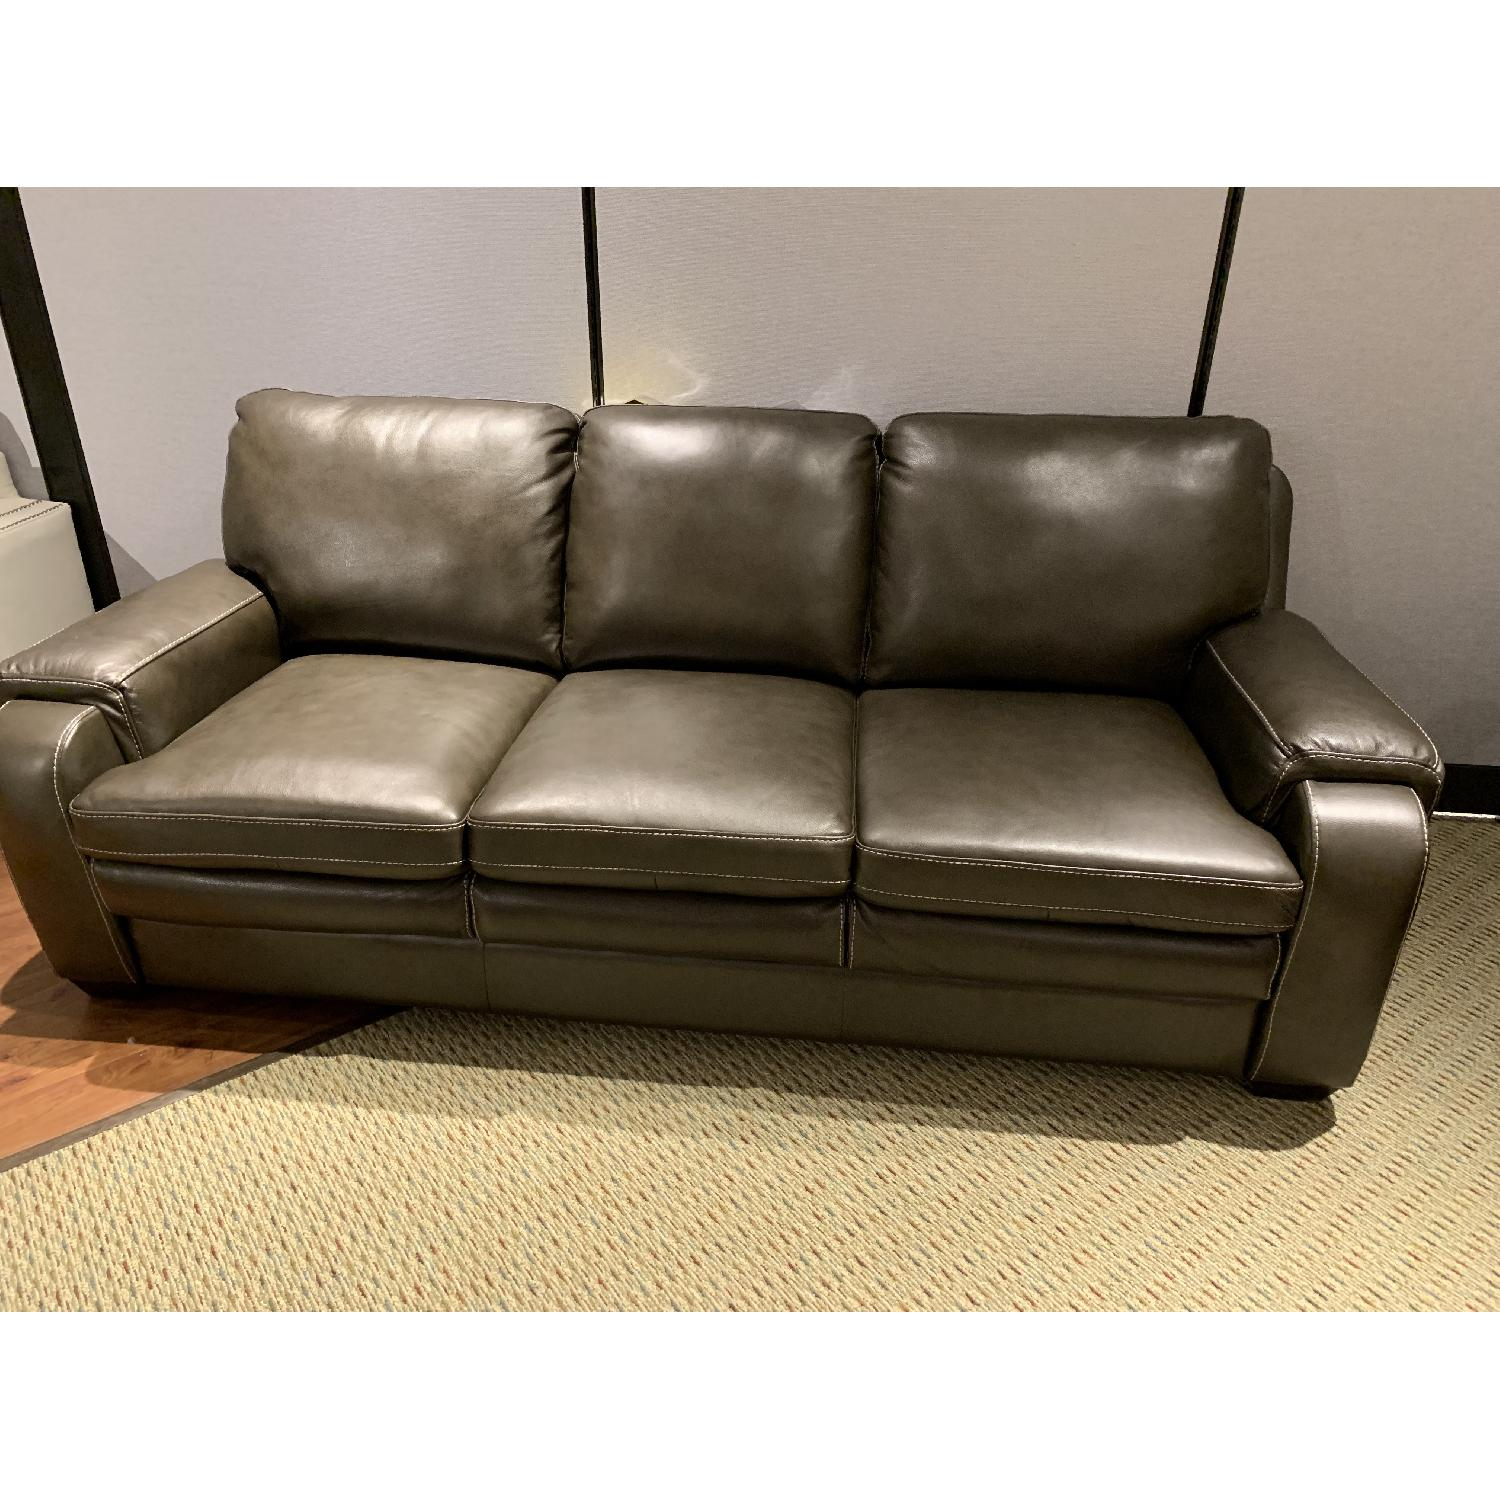 Jennifer Convertibles Matera Leather Match Sofa-0